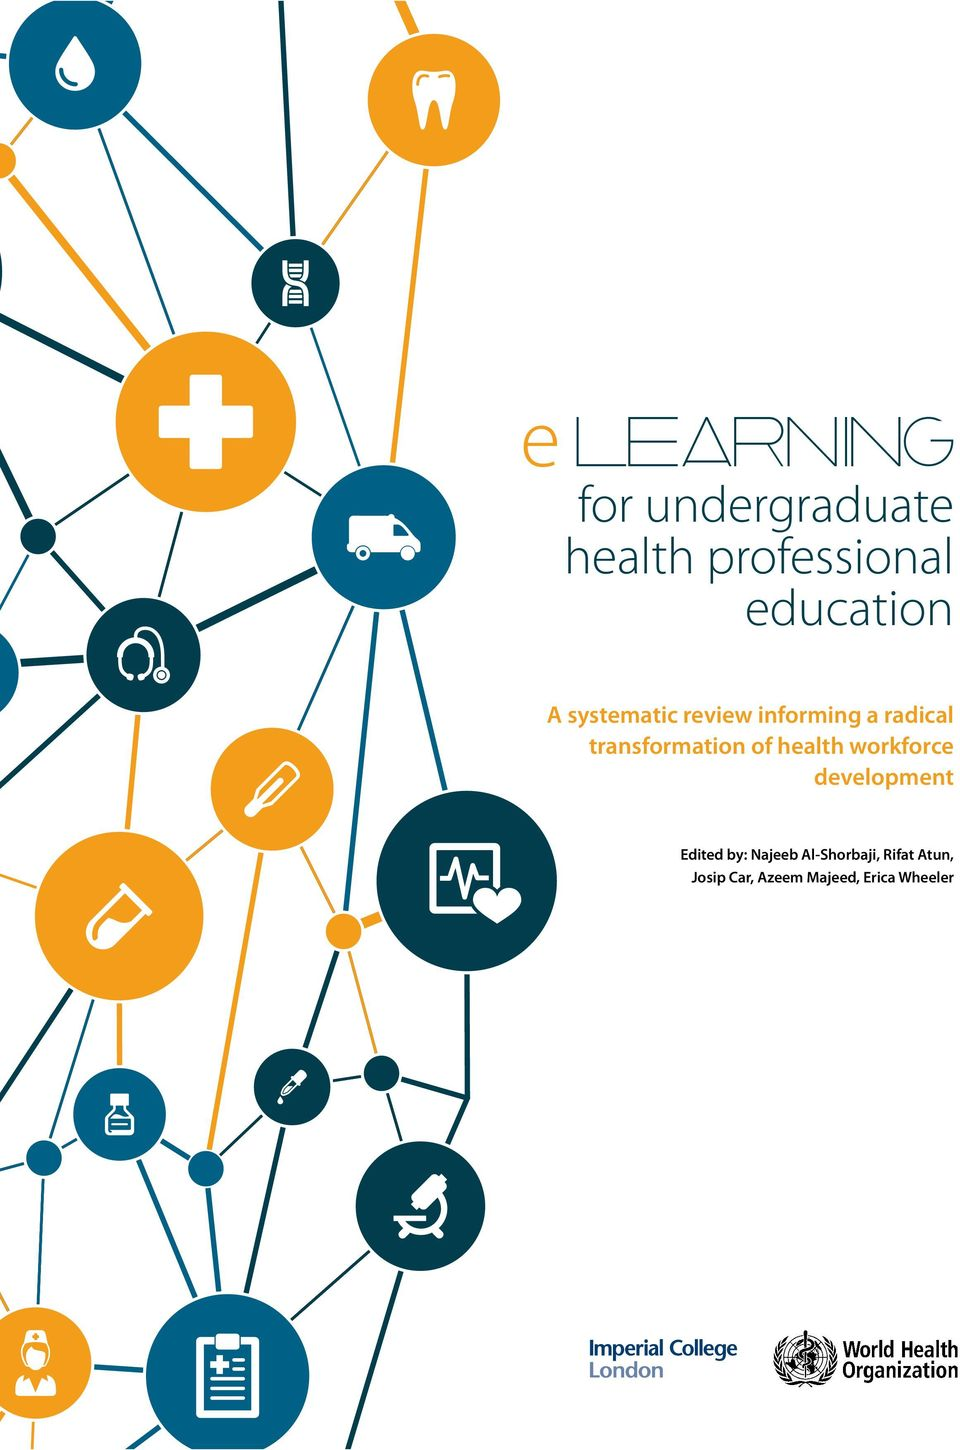 transformation of health workforce development Edited by: